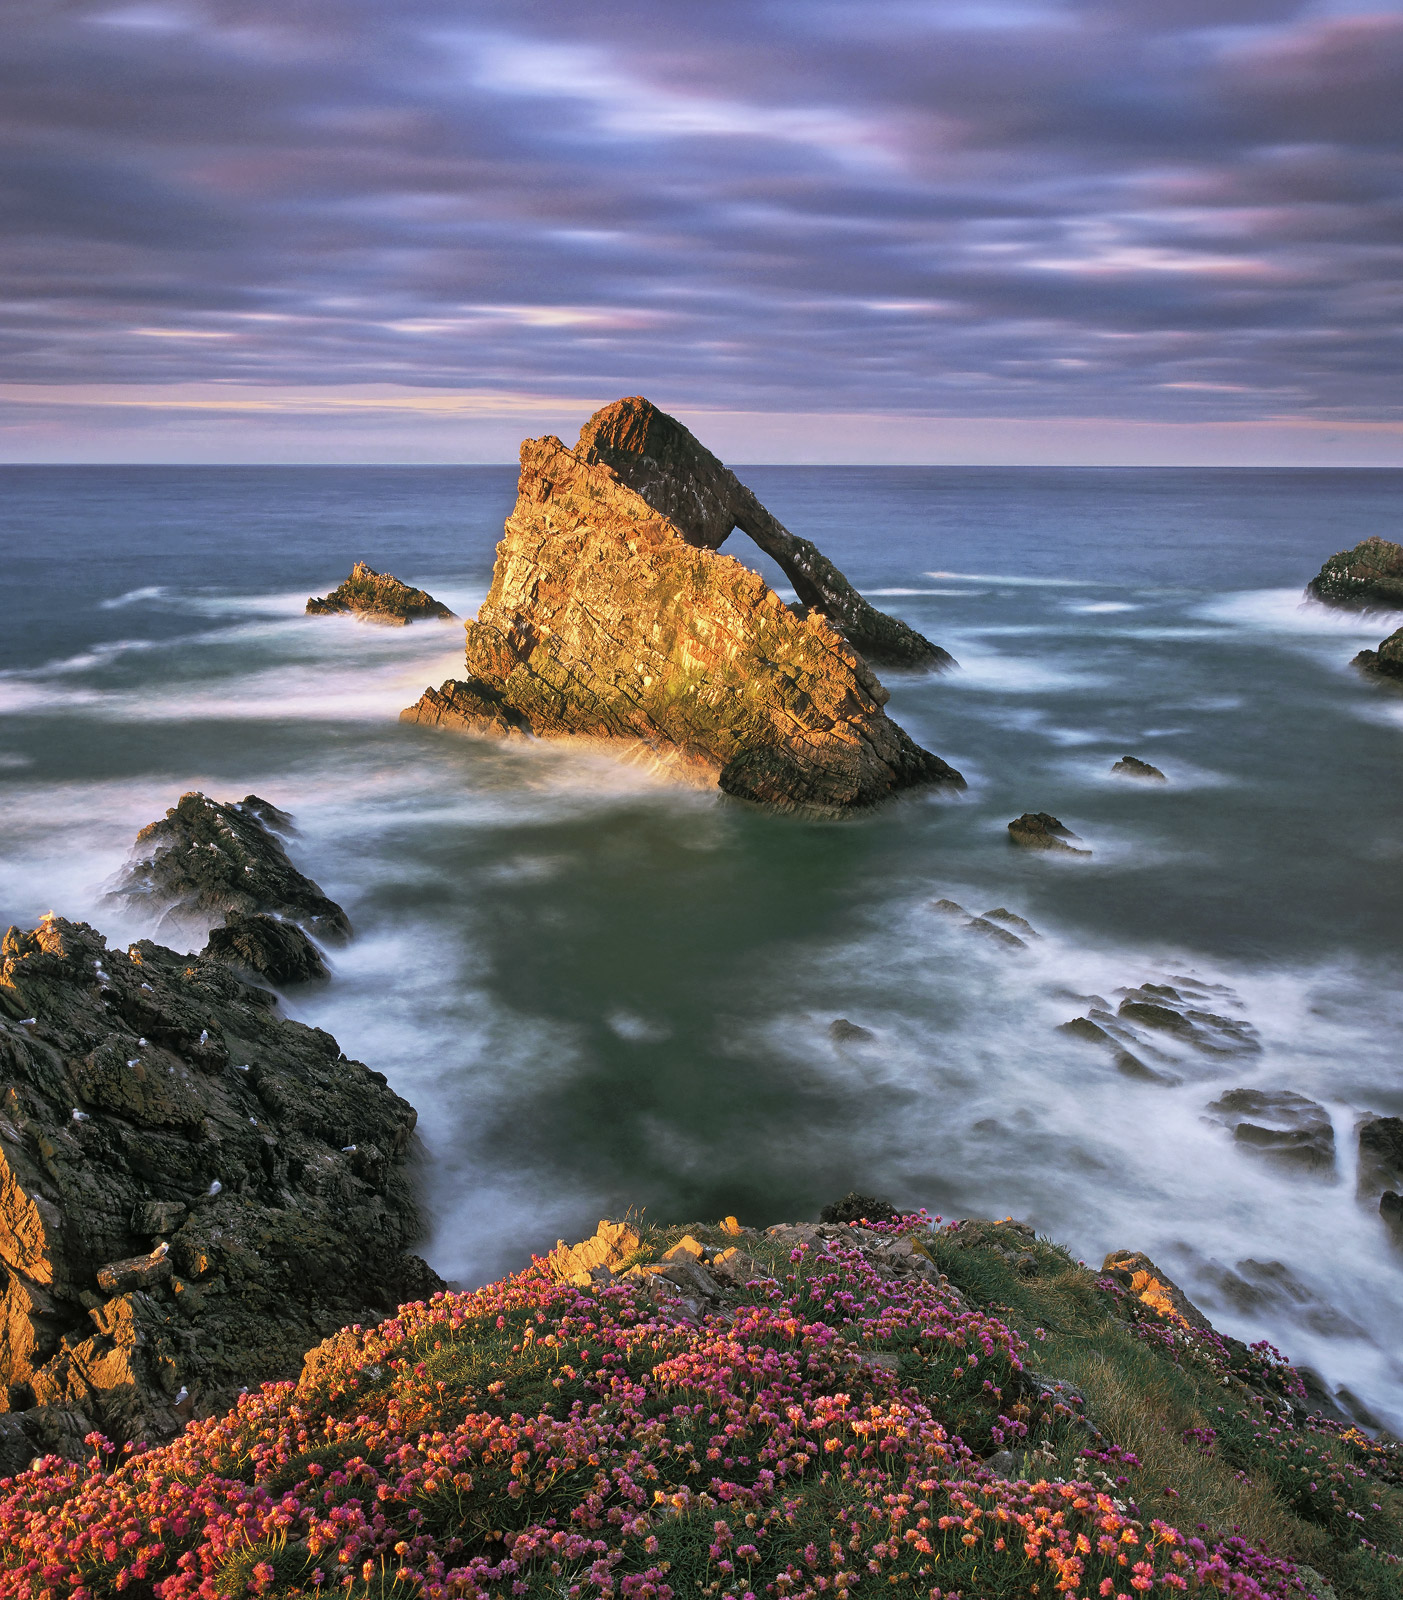 In my humble opinion this is one of if not the very best shots that I have ever taken of Moray's icon the Bowfiddle rock.&nbsp...